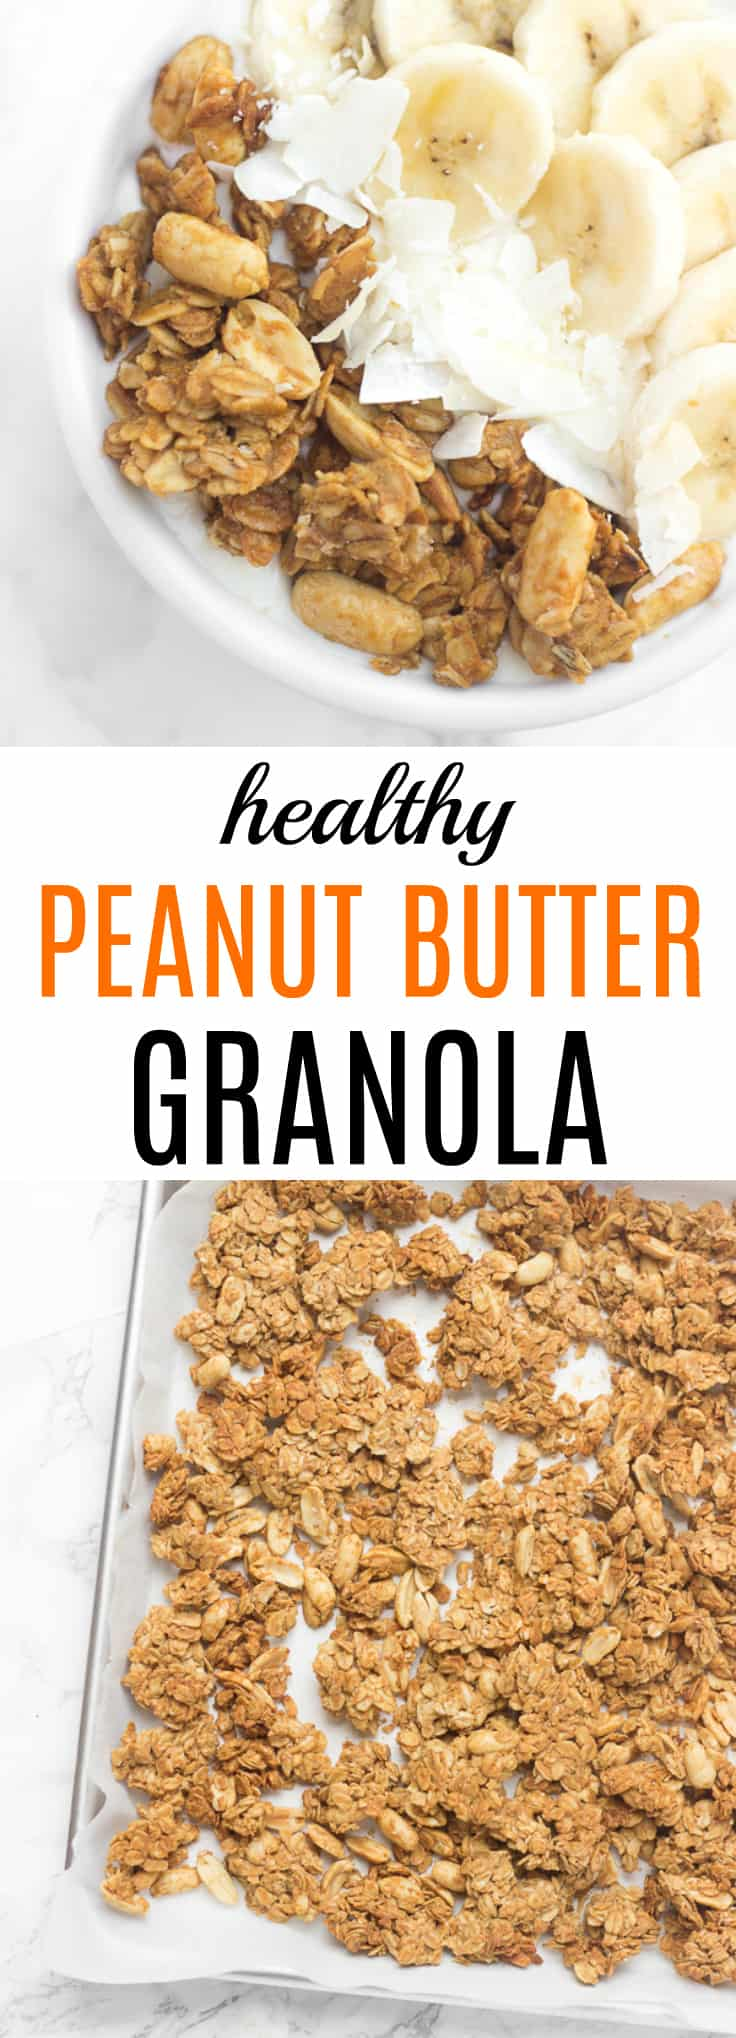 The BEST healthy peanut butter granola- my family LOVES this stuff!